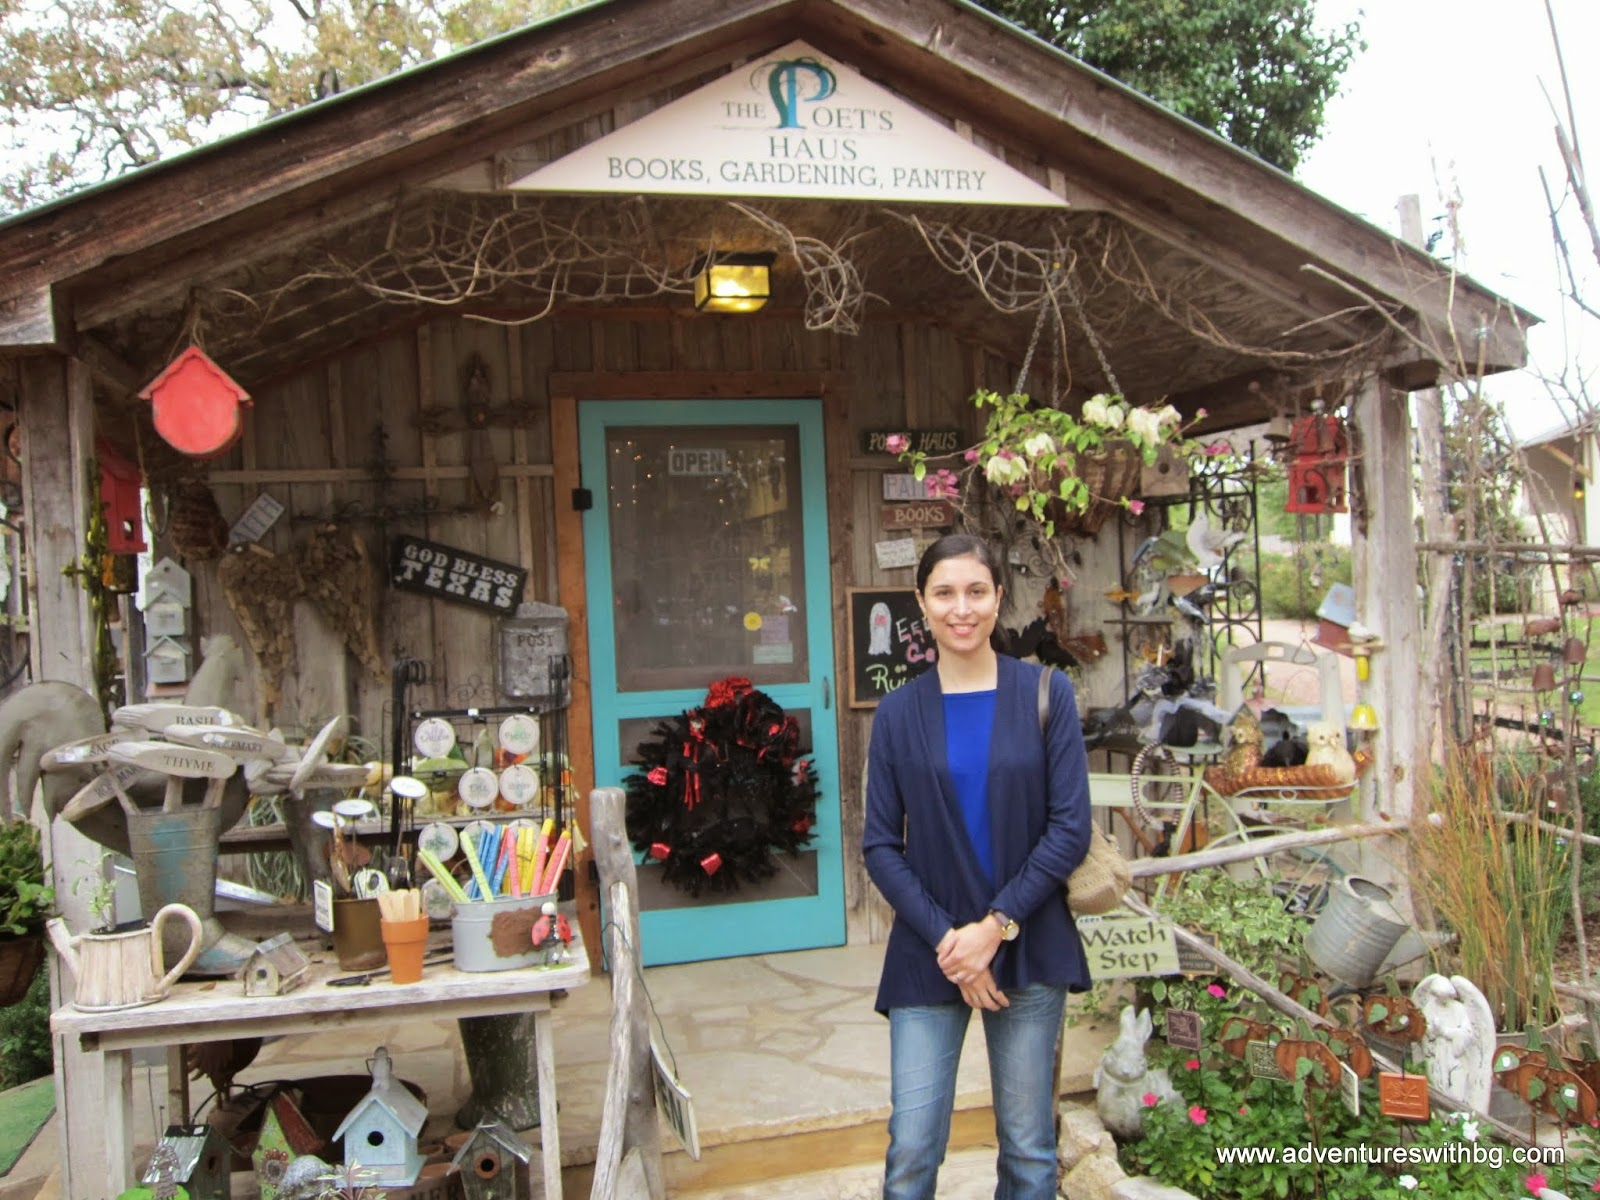 Linda in front of the Farm Haus Bistro gift shop